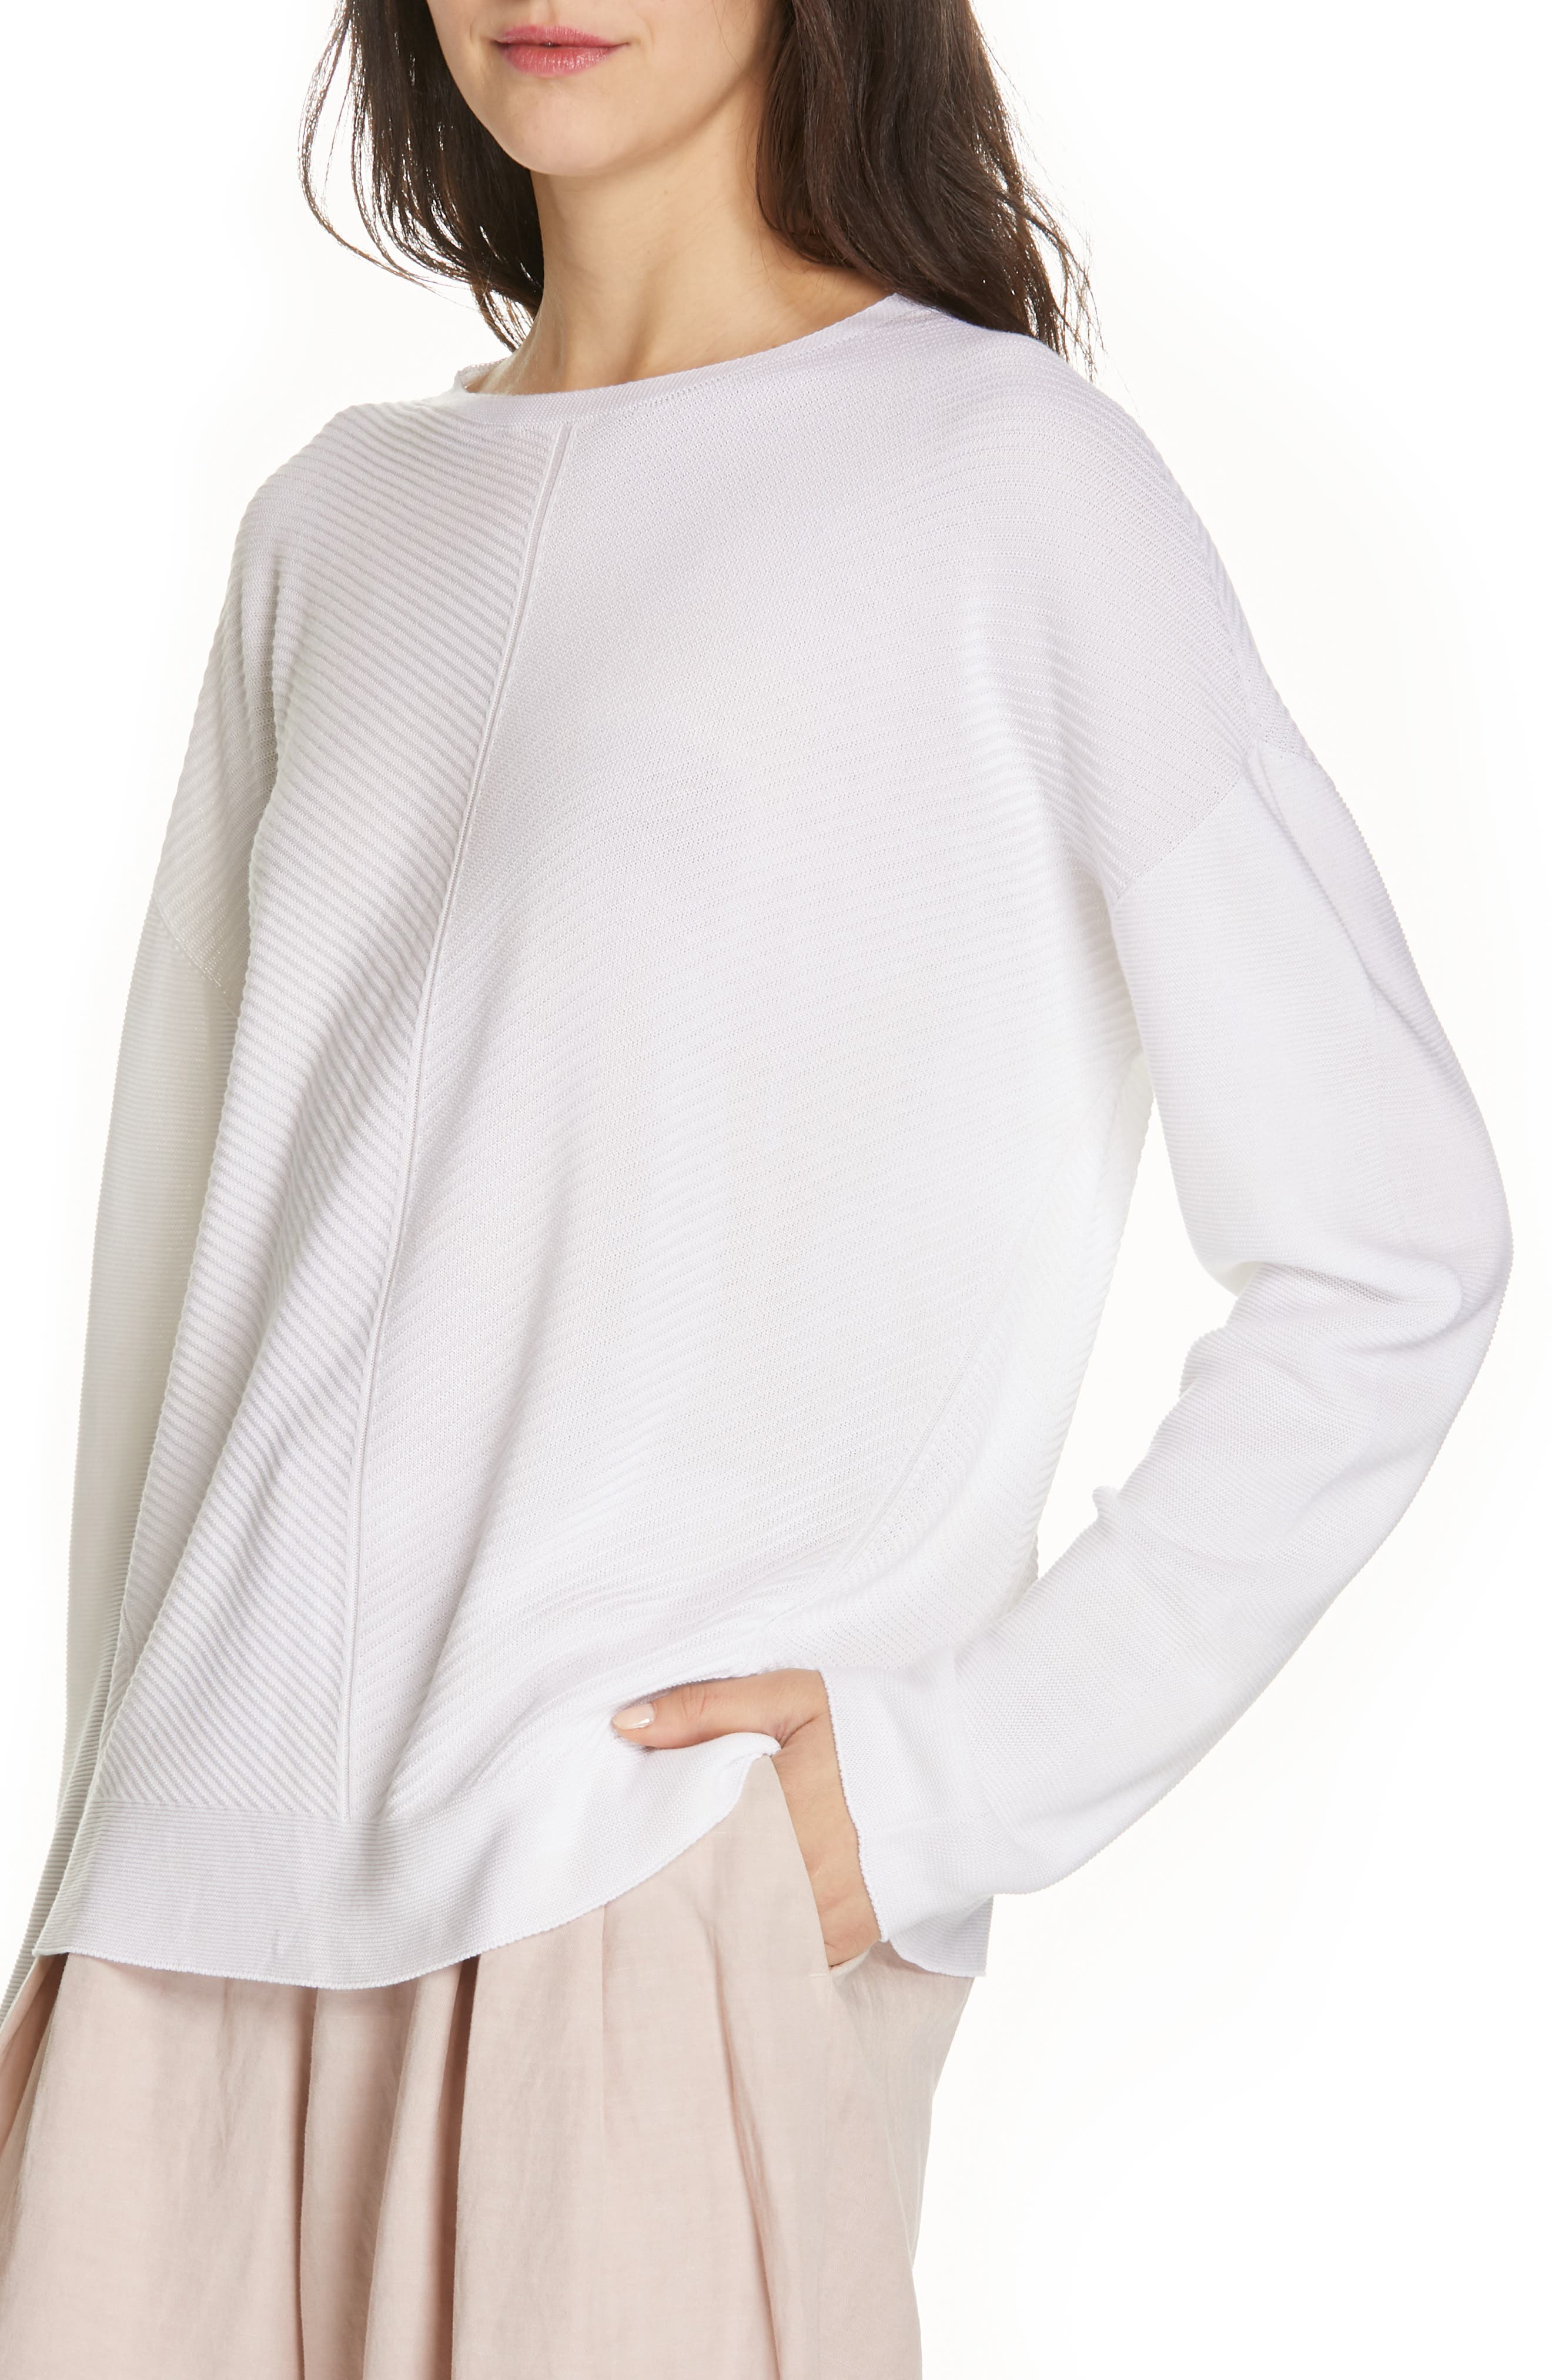 EILEEN FISHER, Round Neck Top, Alternate thumbnail 4, color, 103